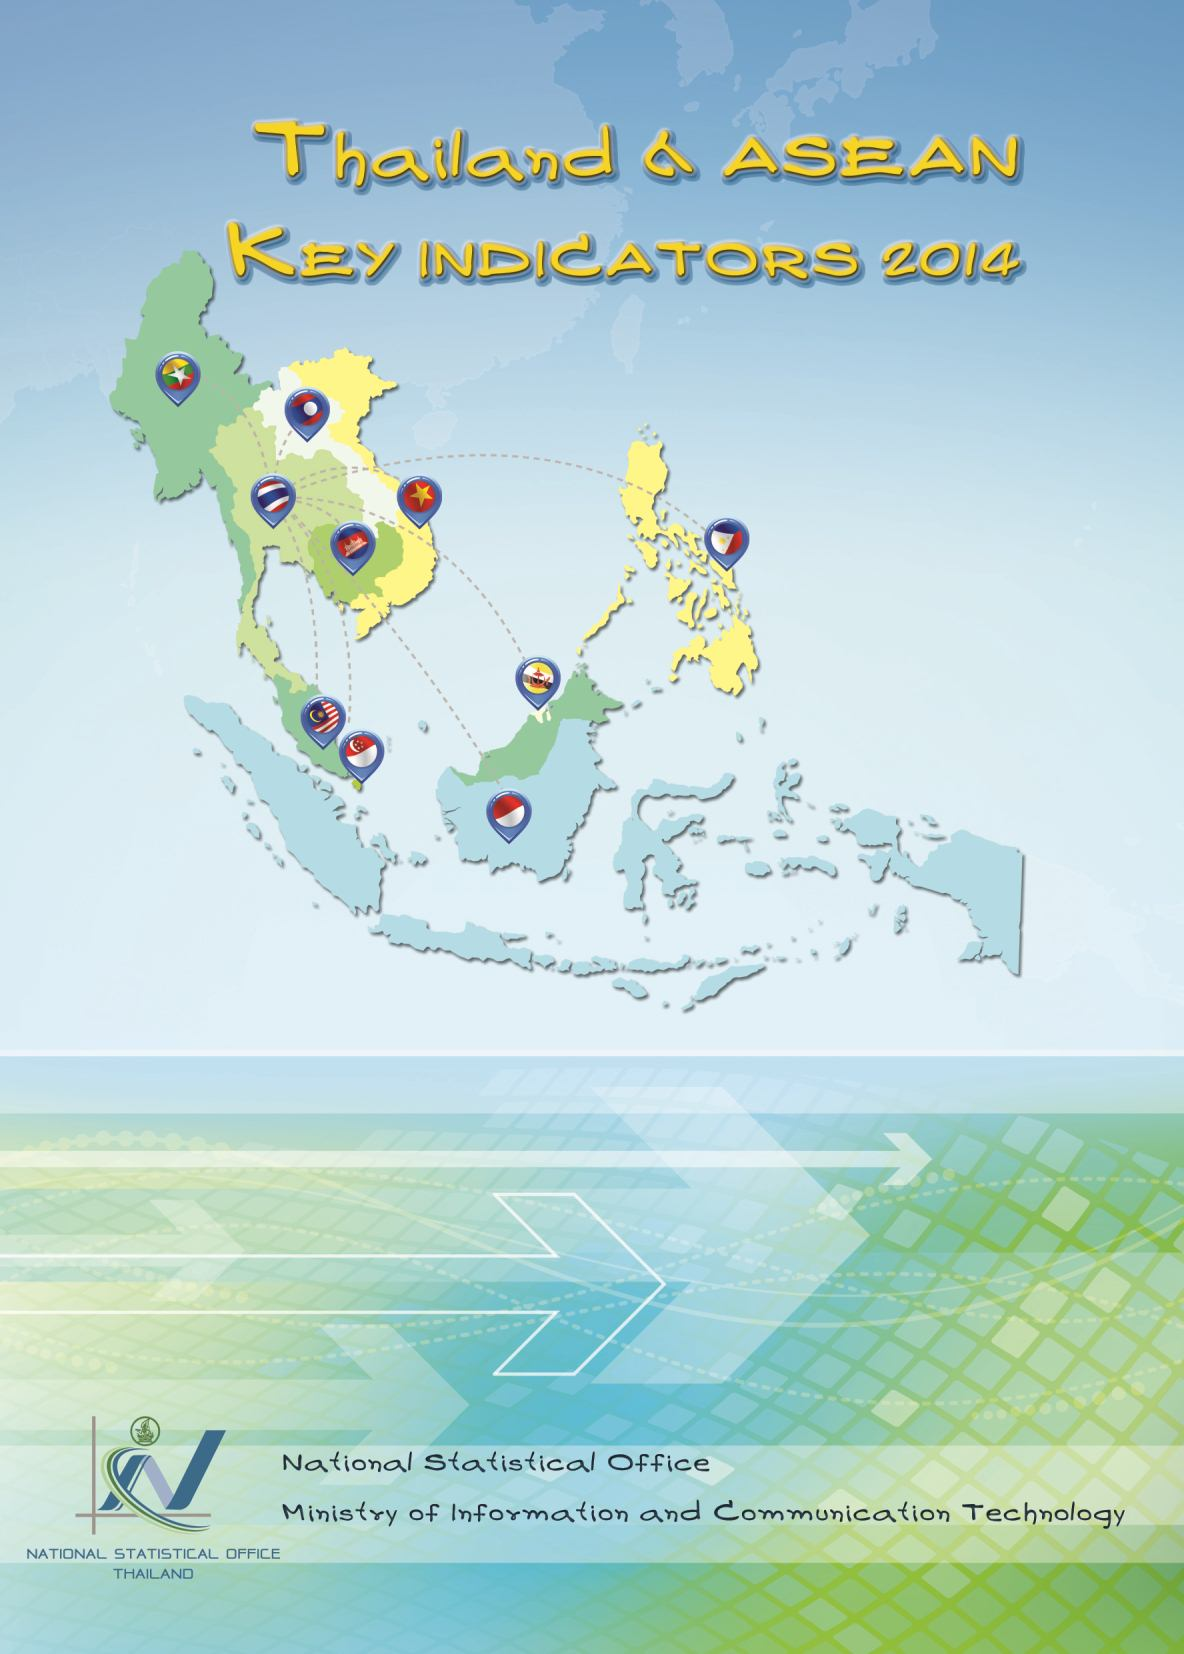 Thailand-ASEAN KEY INDICATORS 2014